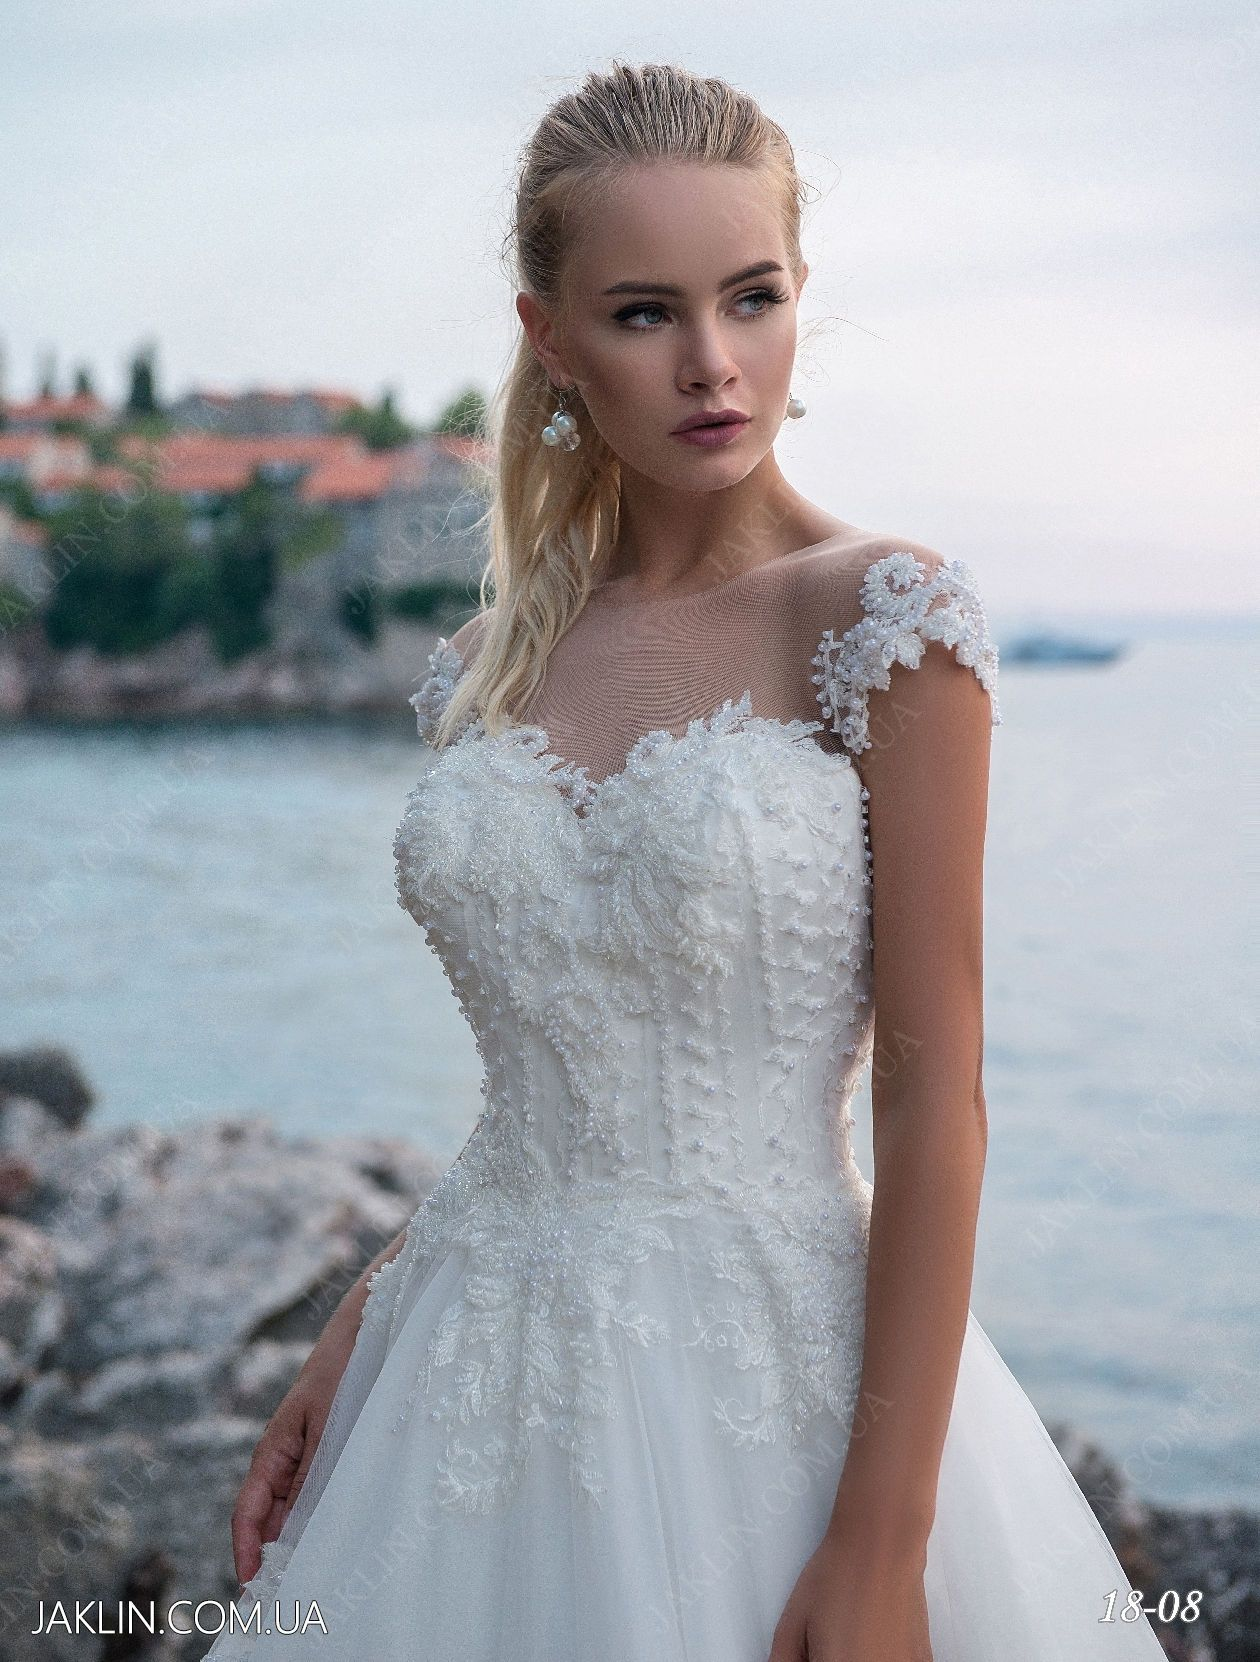 Inexpensive high-quality wedding dress of 2018 model number 18-08 ...